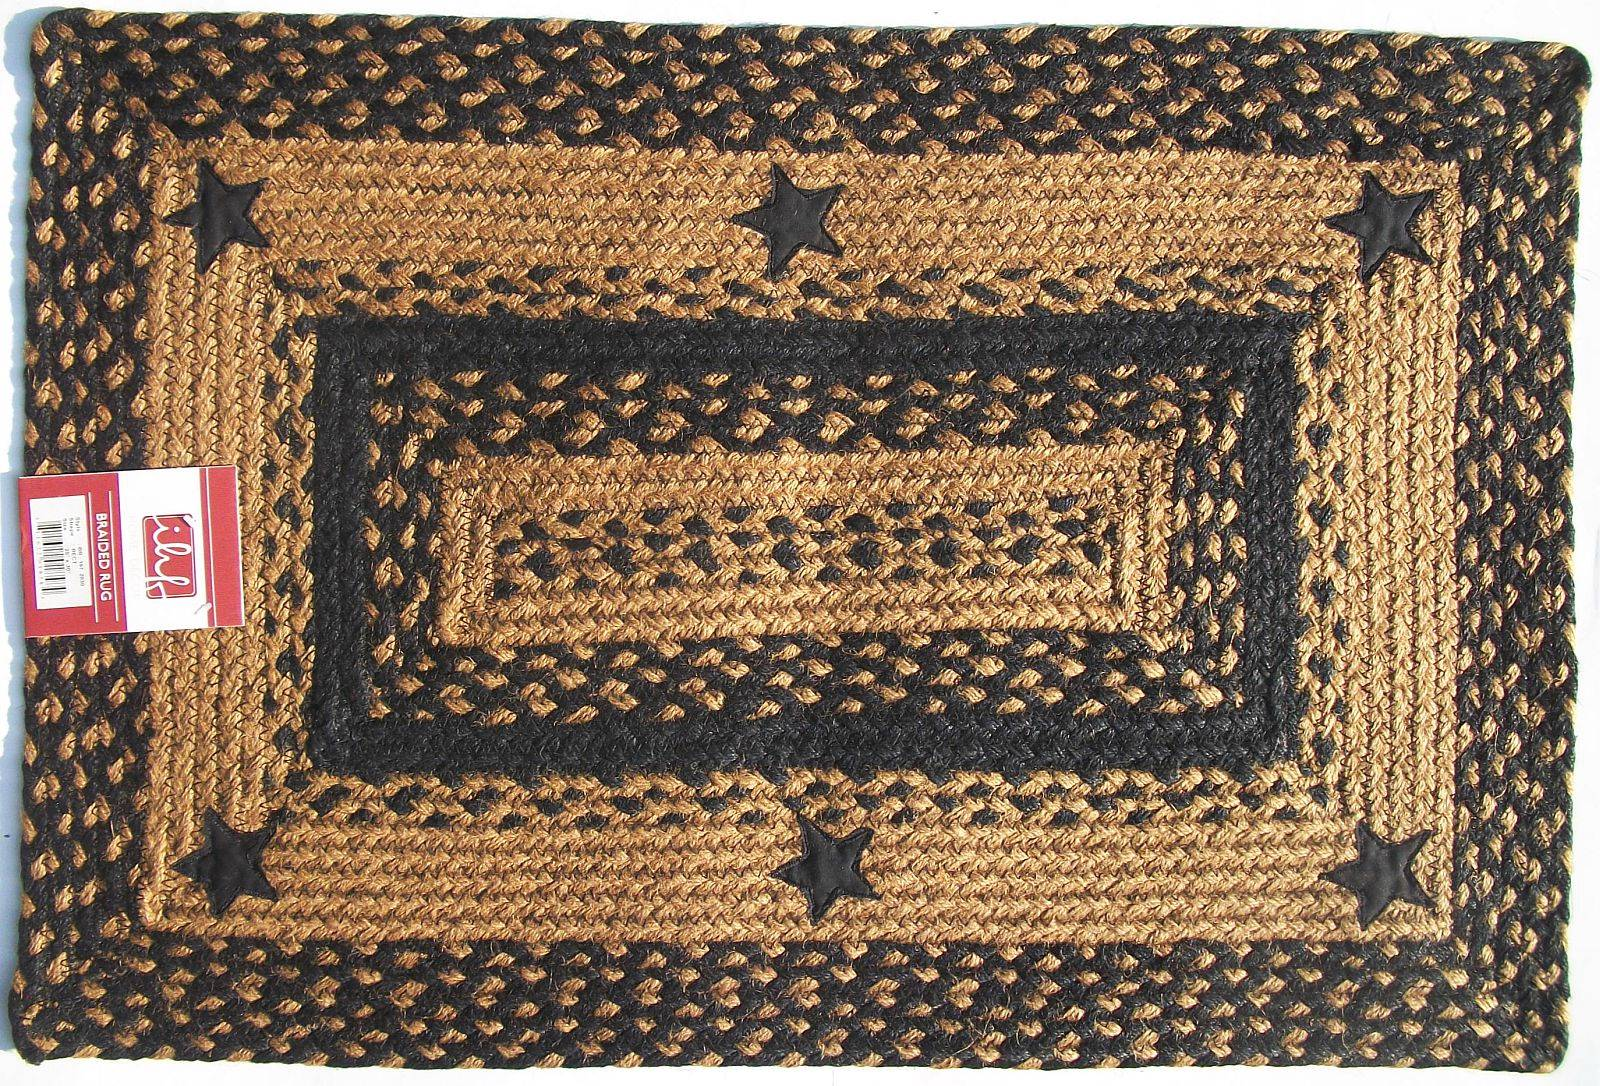 Ihf Applique Star Black Tan Braided Jute Rug Rustic